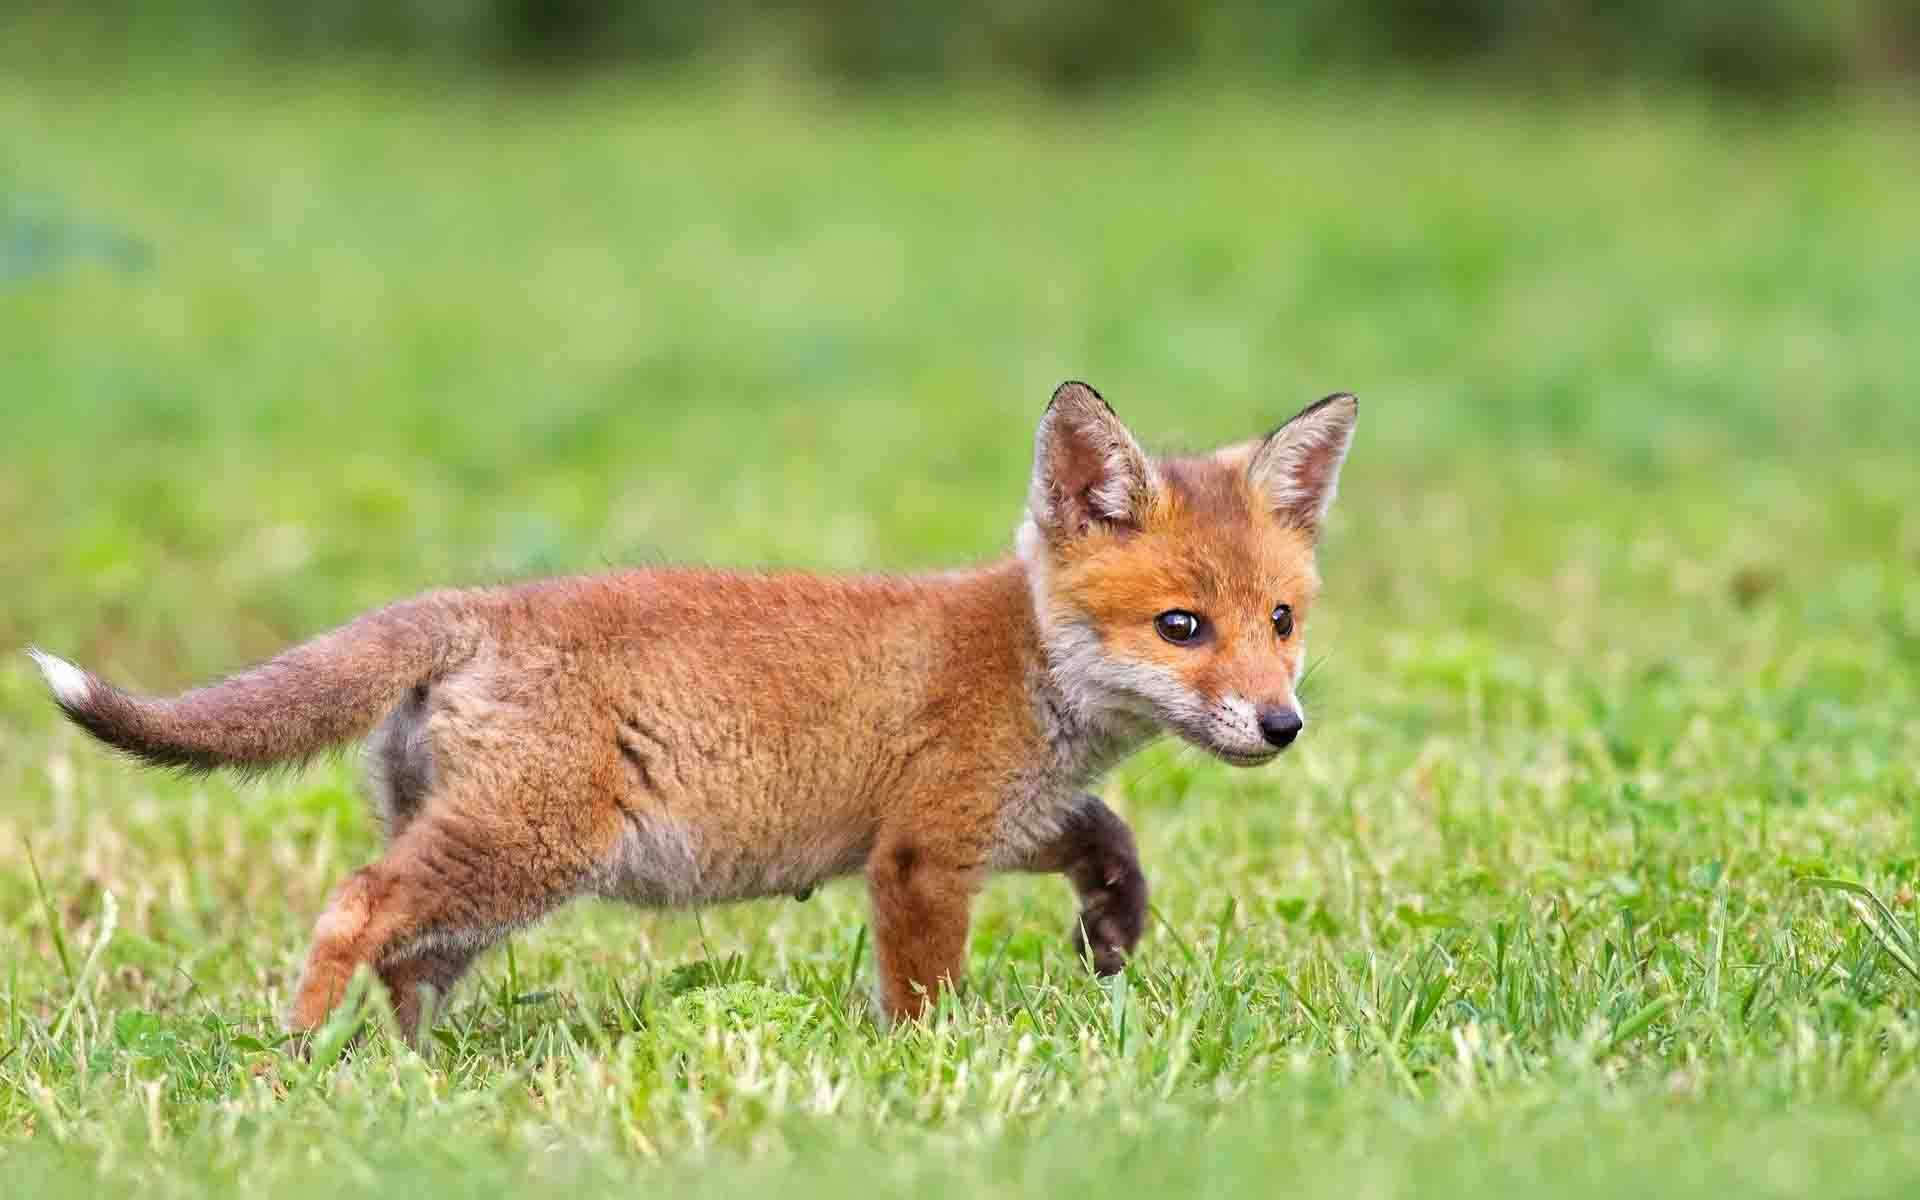 Cute Baby Animals Hd Wallpapers Free Download Hd Wallpapers Free Download Baby Animals Pictures Baby Animals Cute Baby Animals